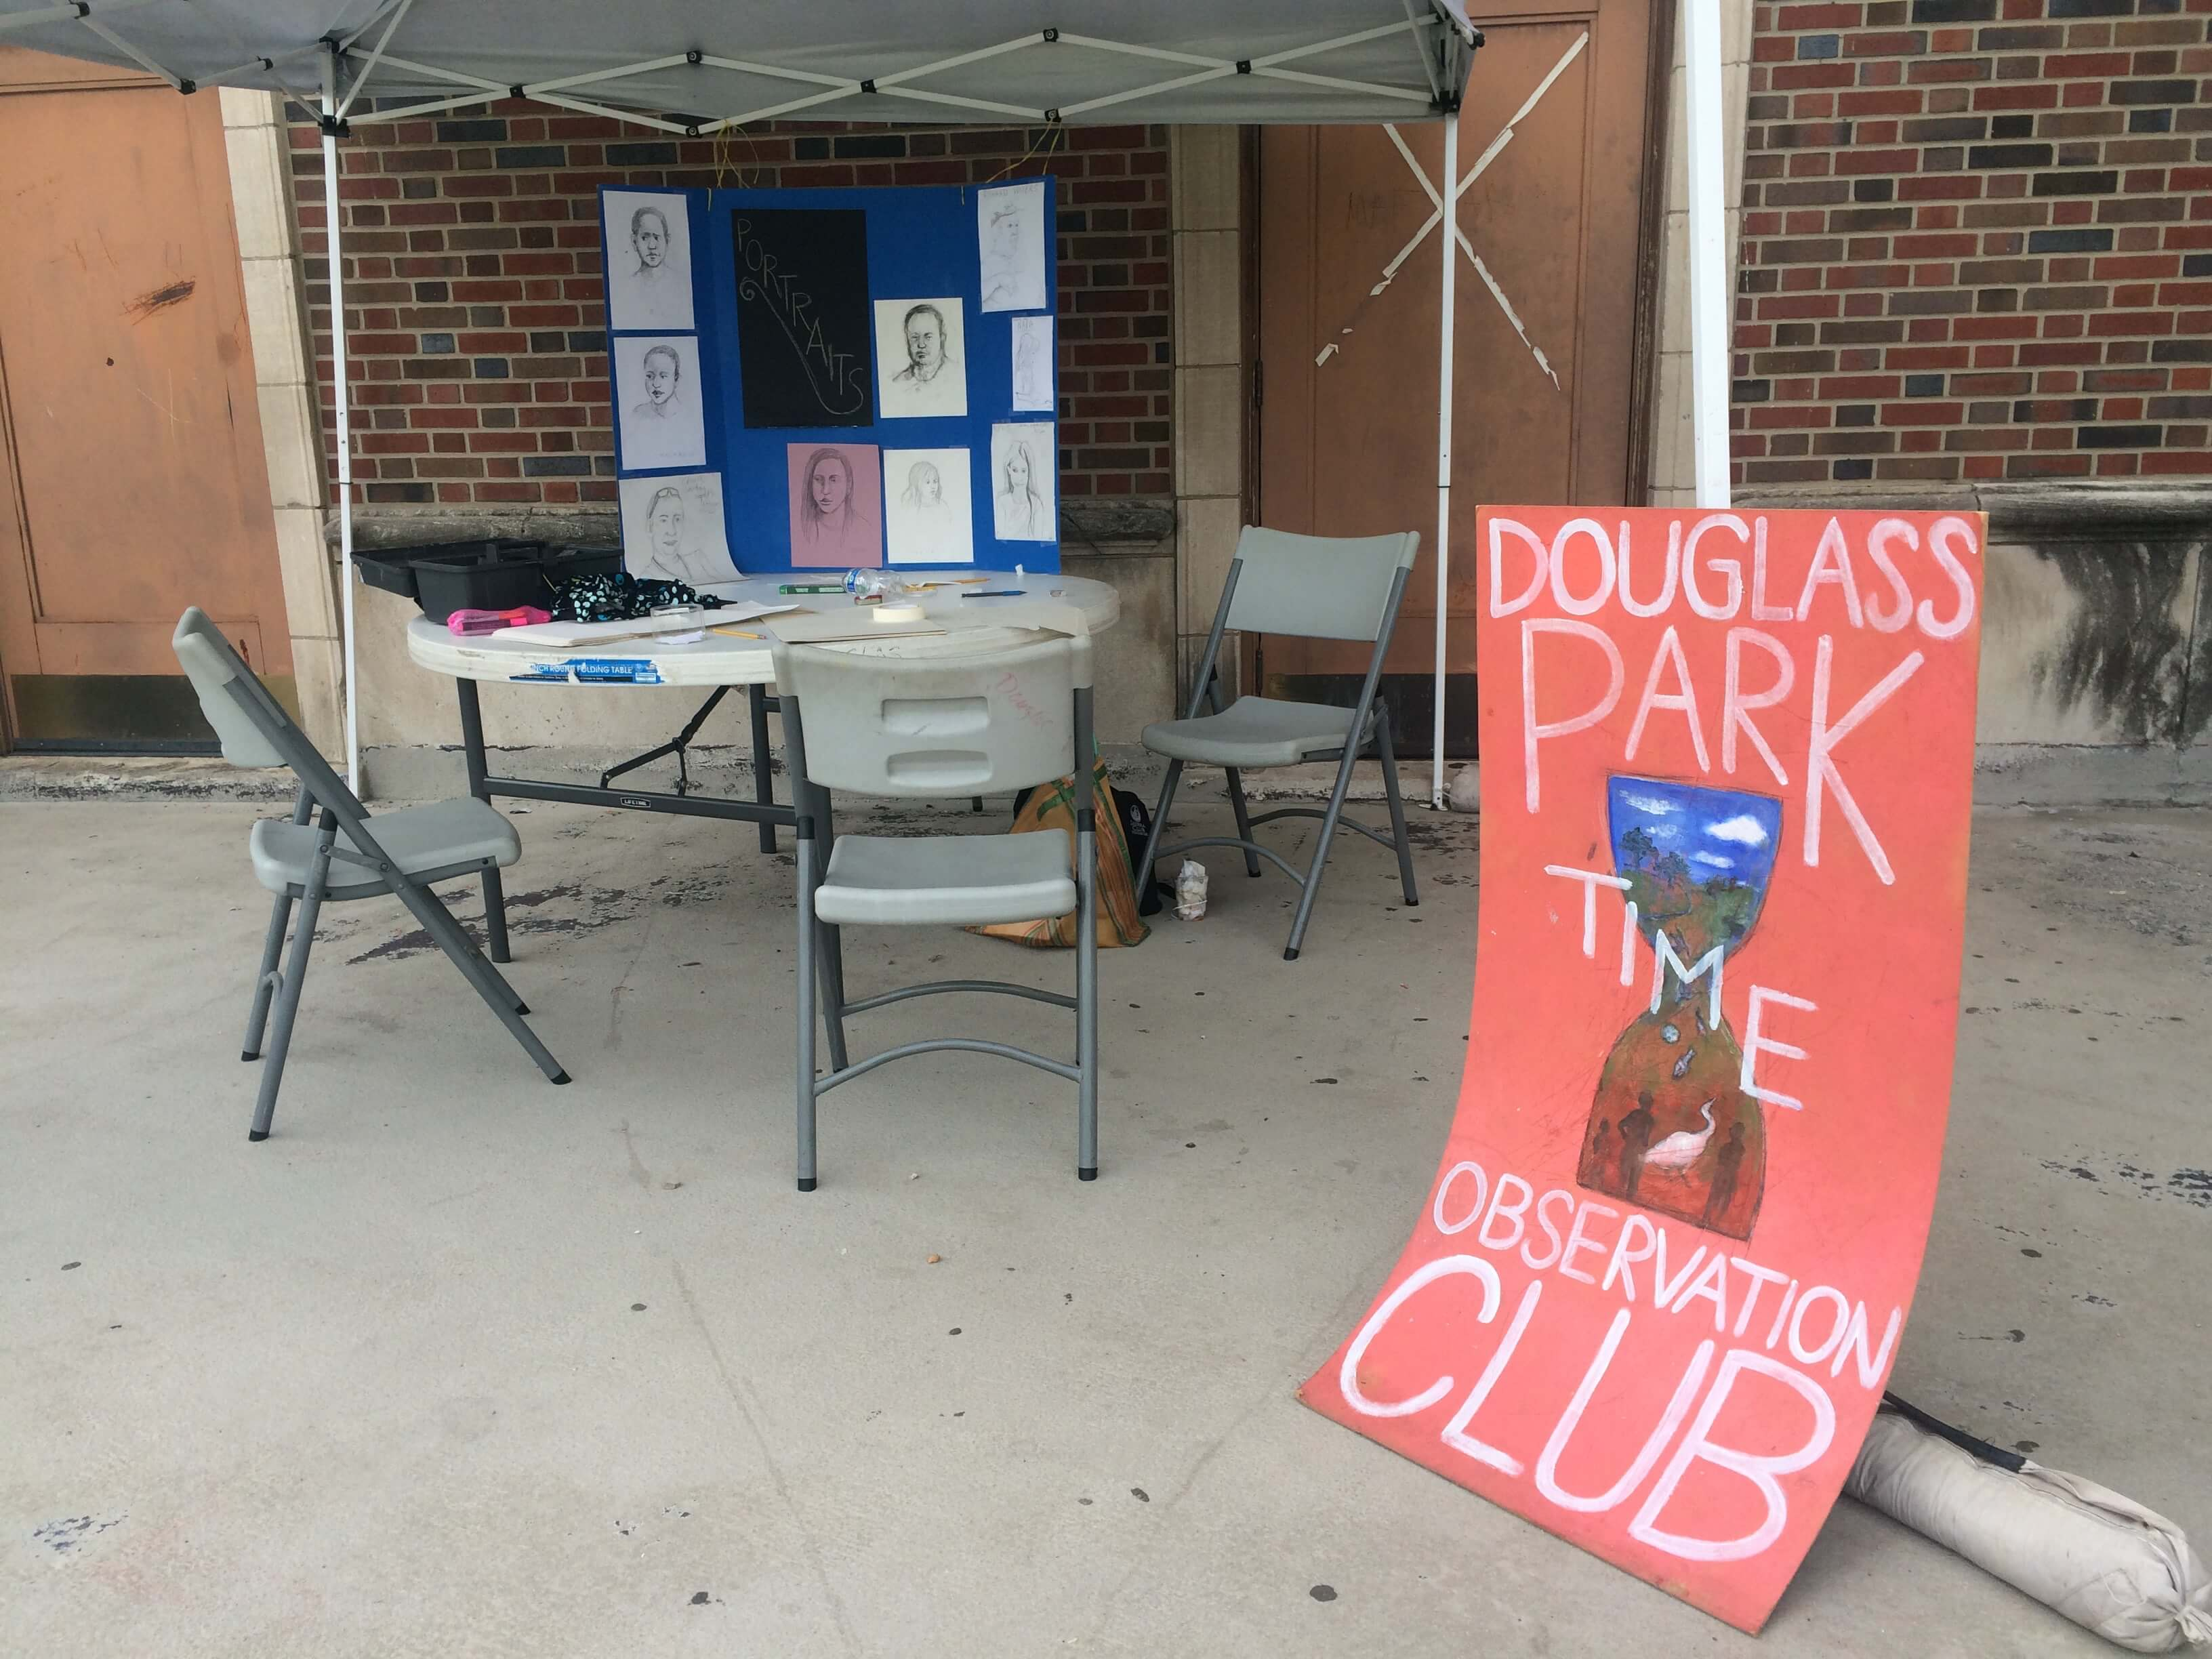 picture of Douglas Park Time Observation Club